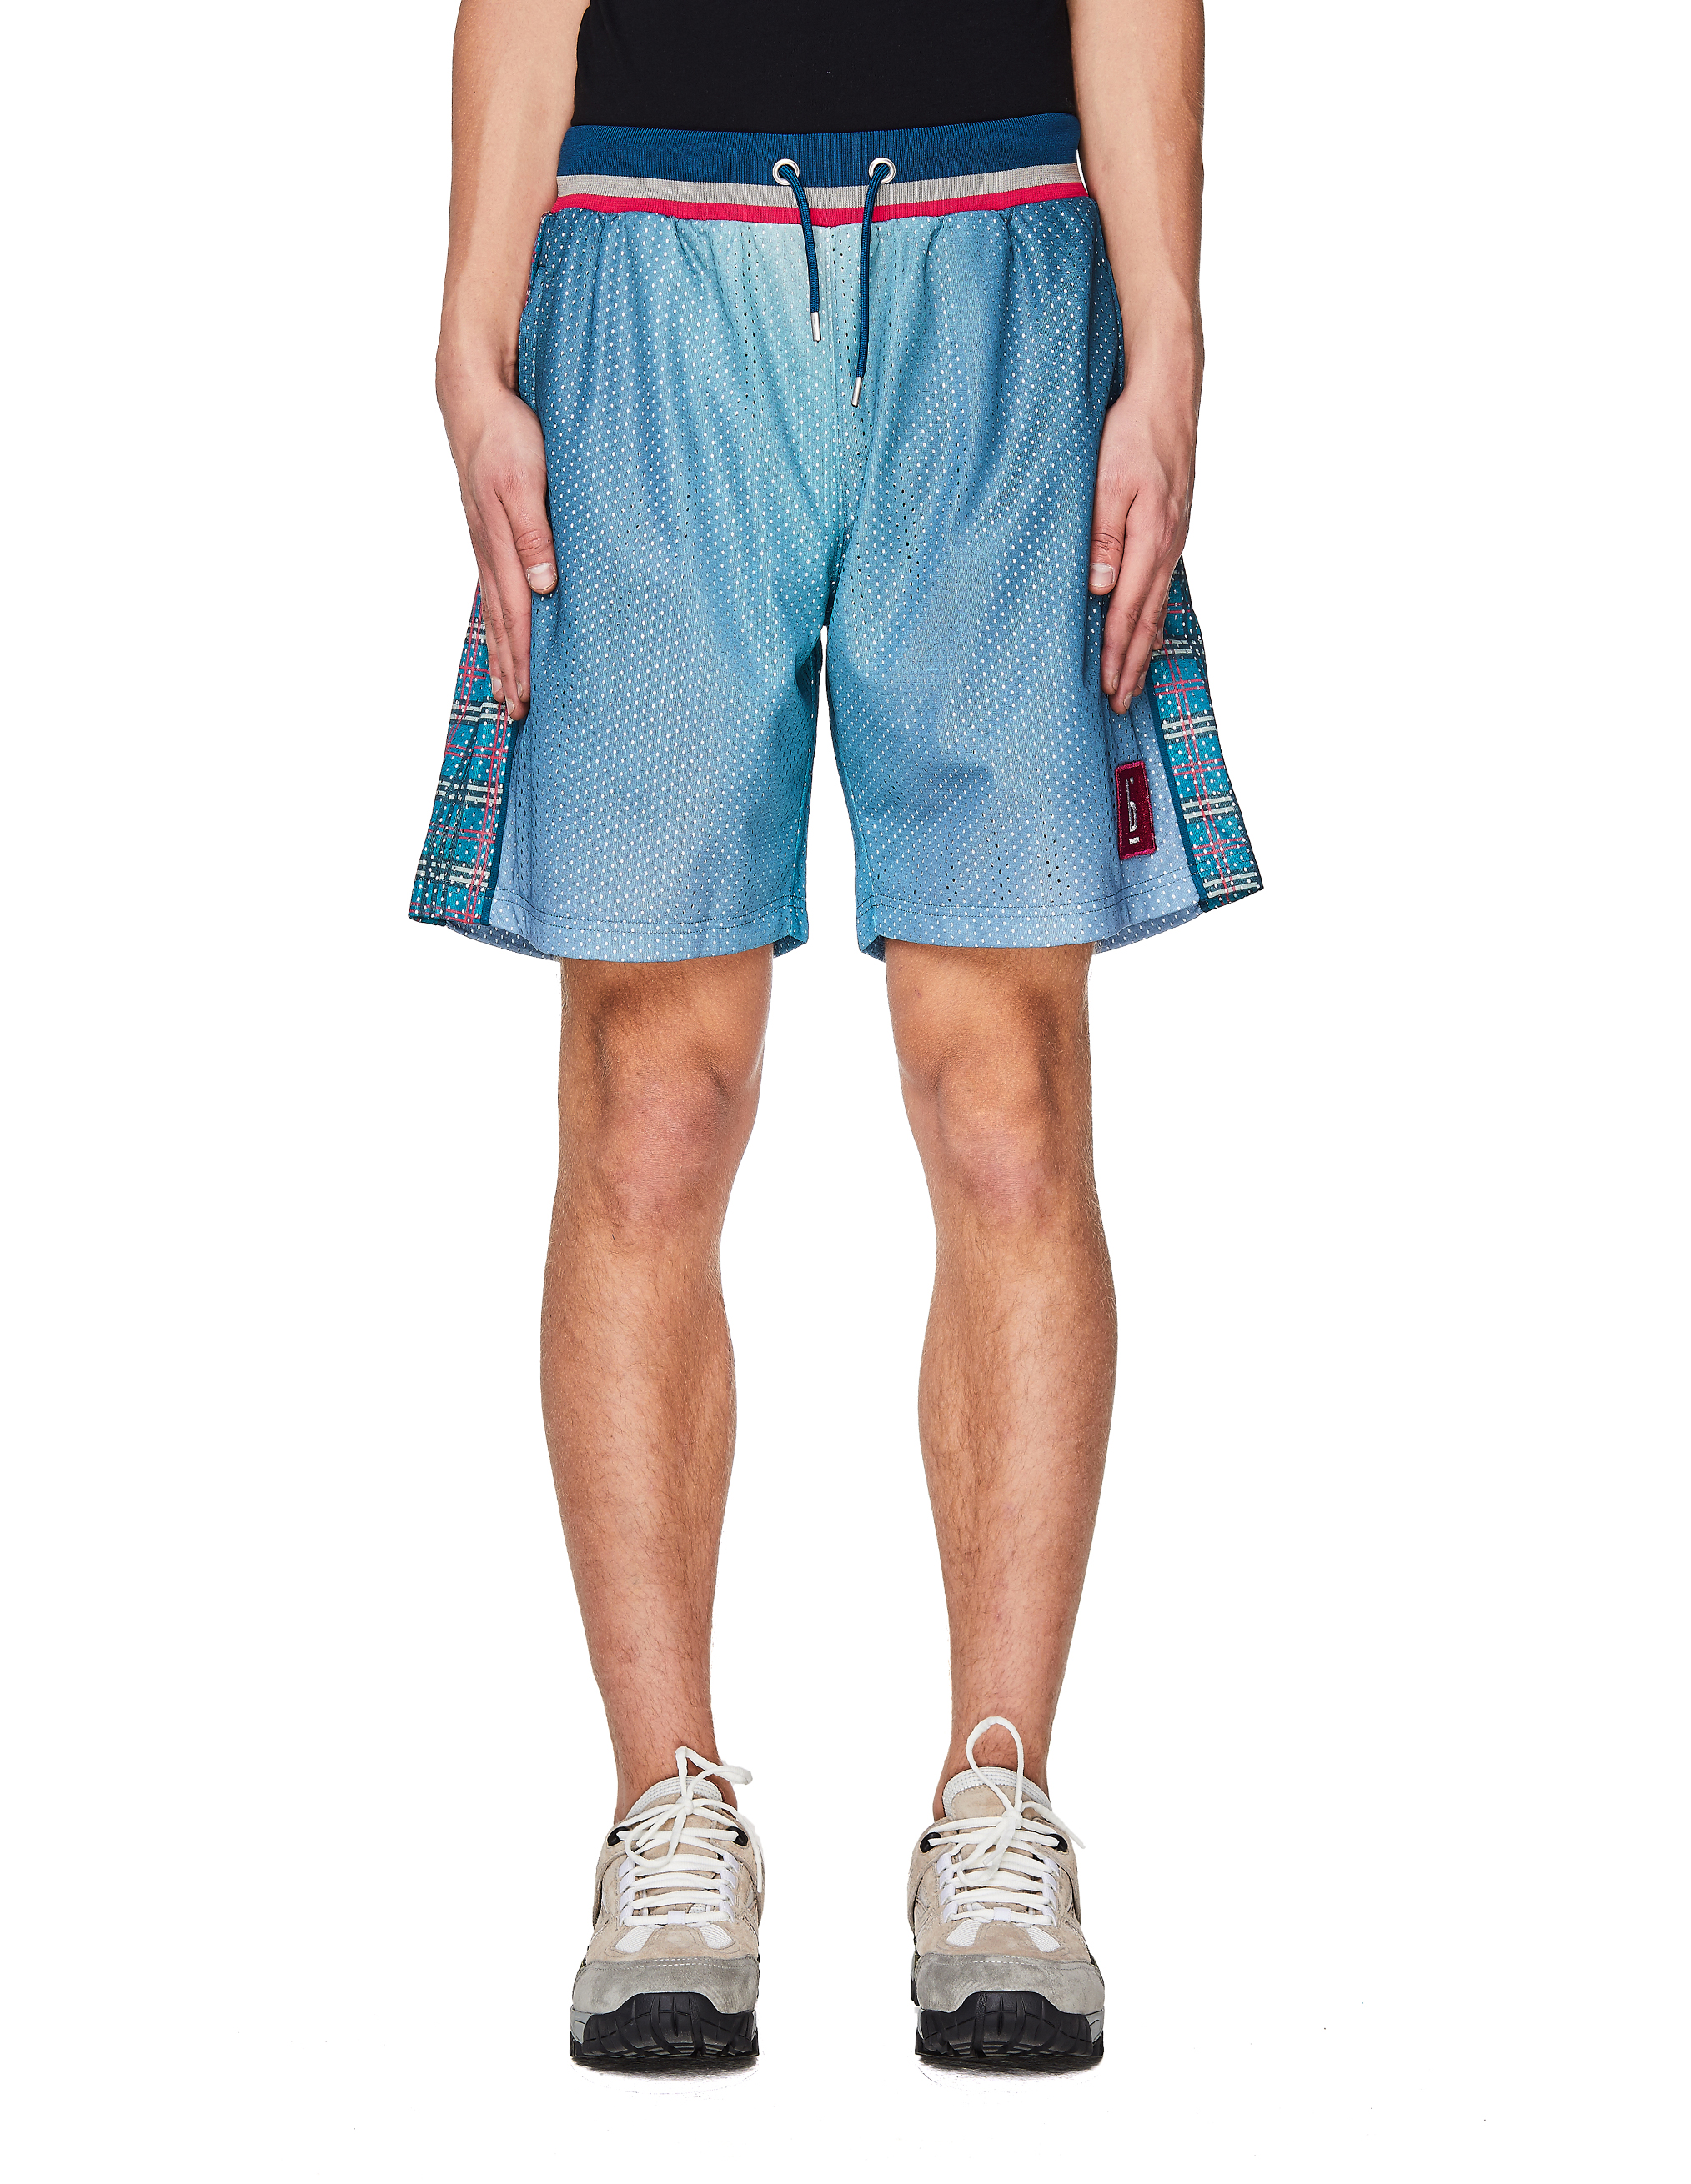 Pigalle Blue Mesh Basketball Shorts